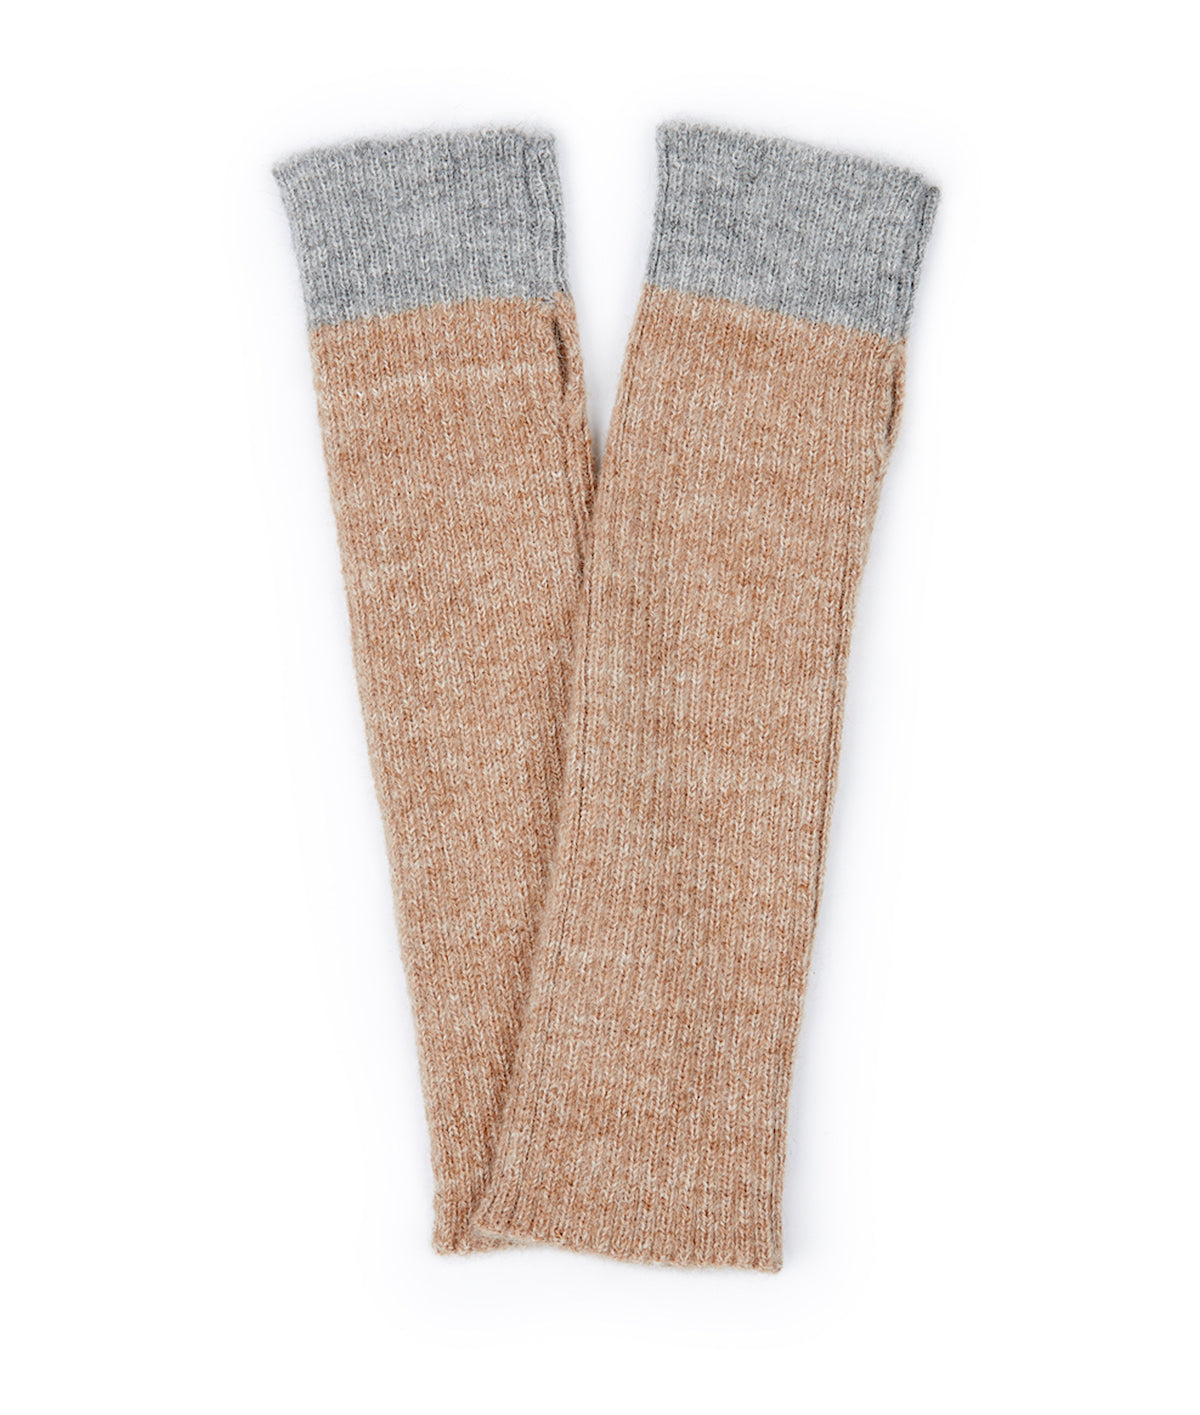 Alpaca wool gloves in brown with grey palms from Ally Bee